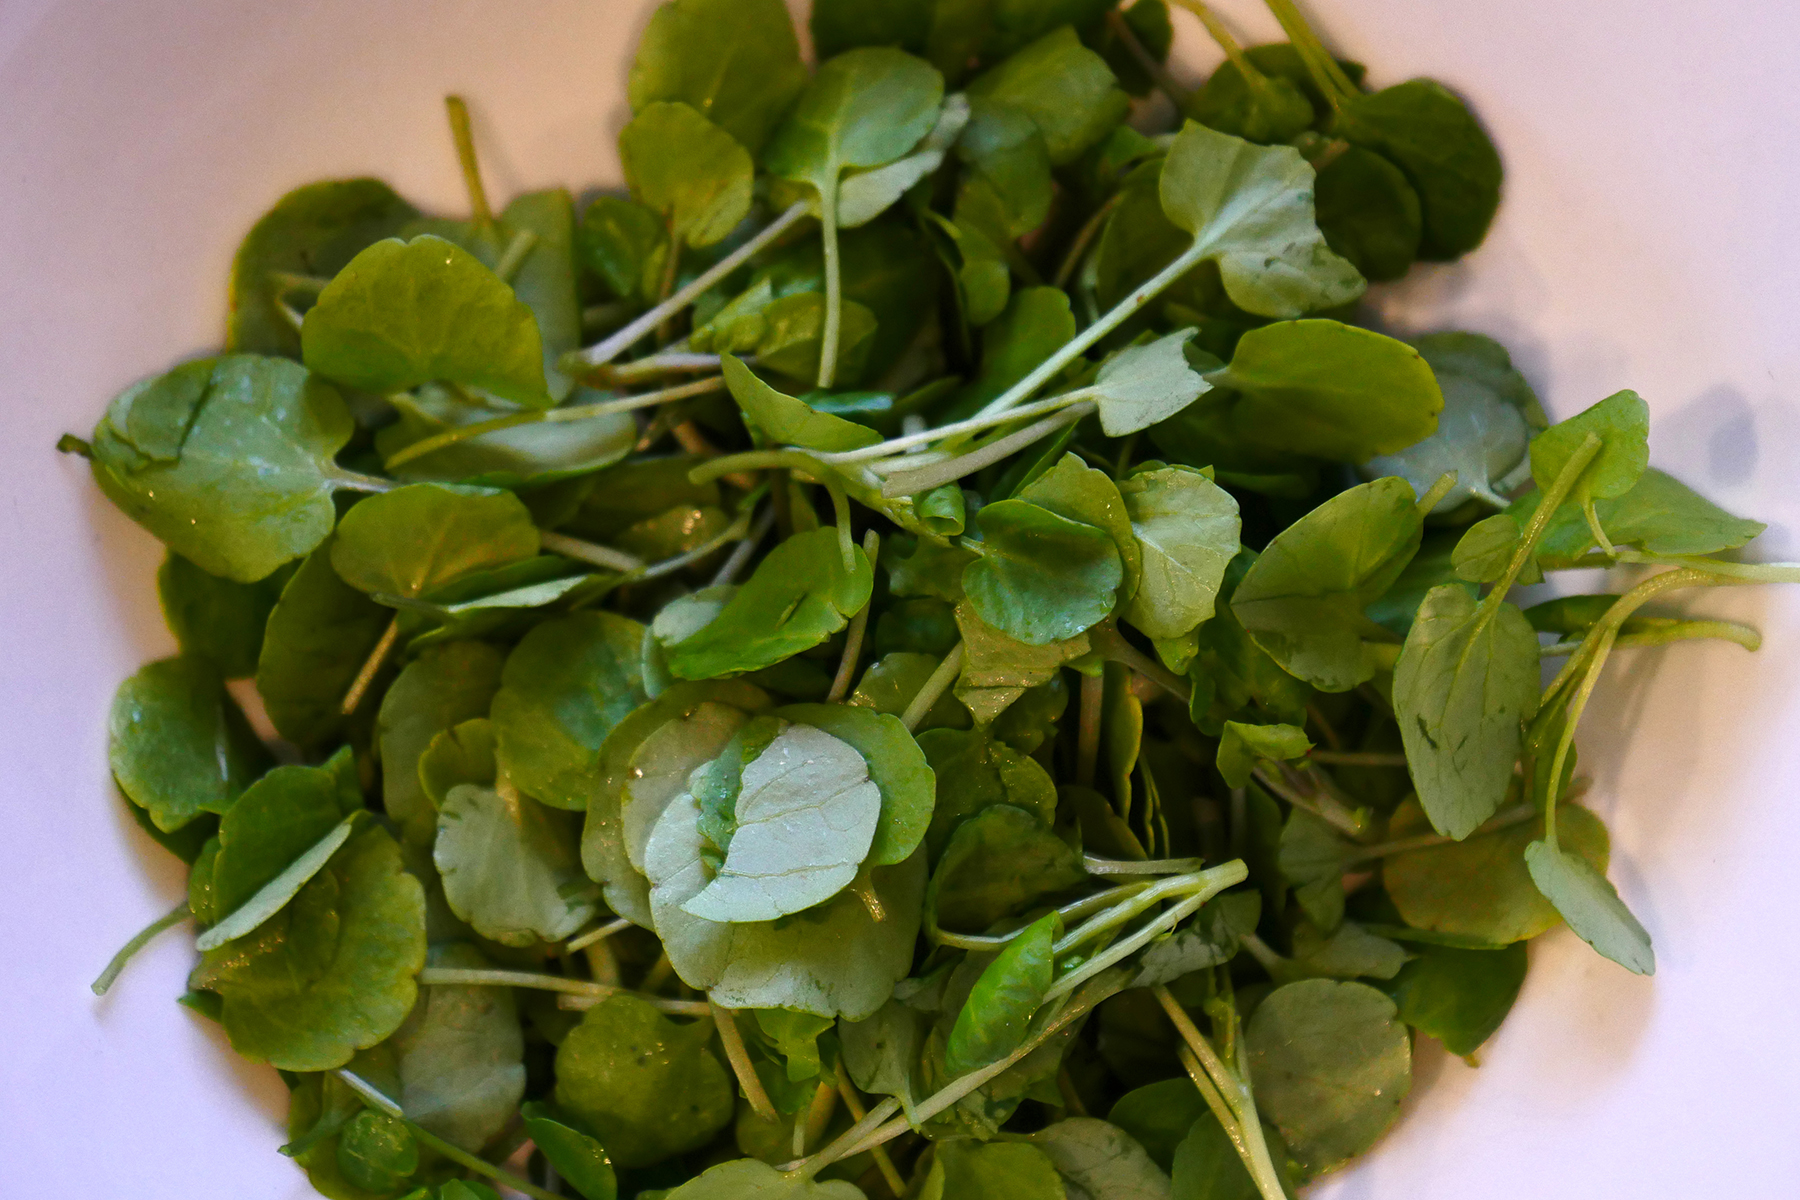 Rather than chop off the watercress and risk bruising the tender leaves, I just pulled the greens off the stems and into a bowl. This is about a half-cup.